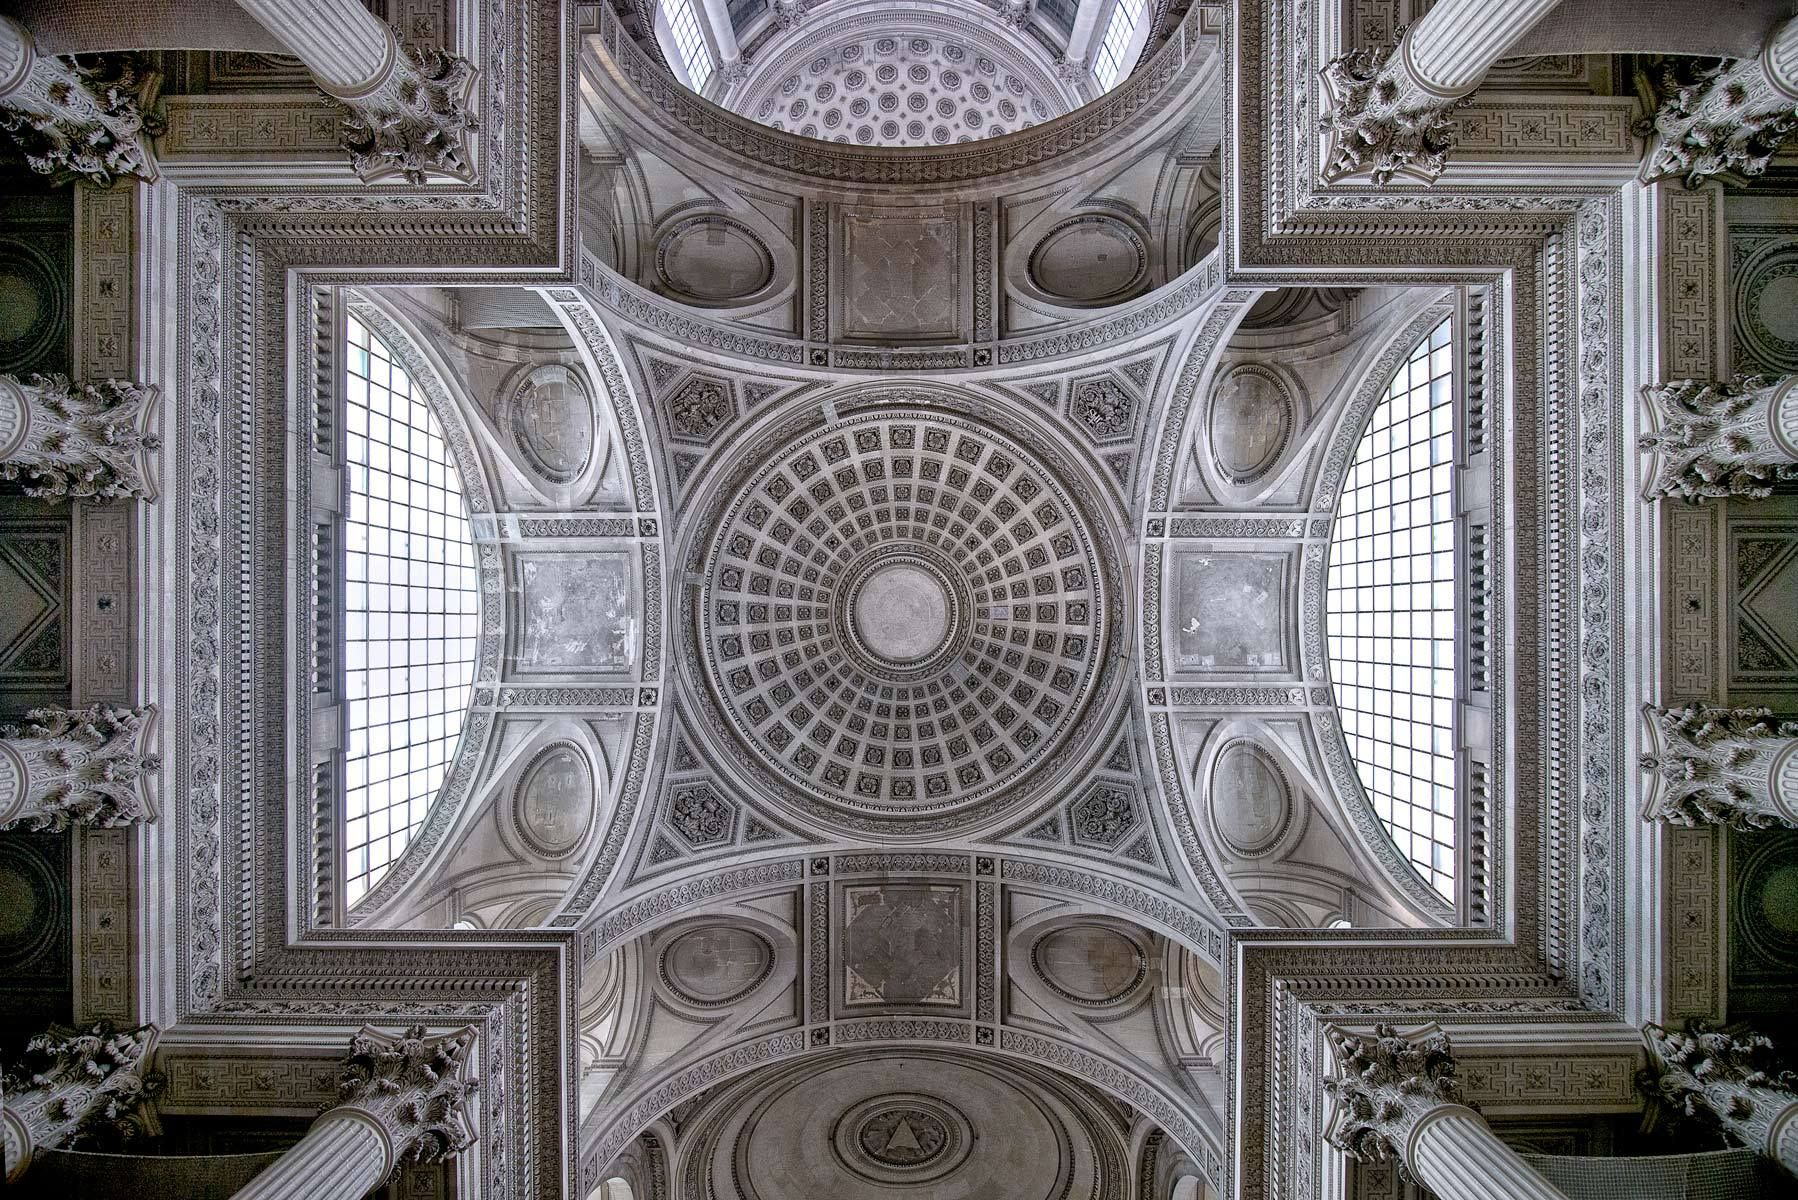 Ceiling Detail of the Pantheon, Paris, France